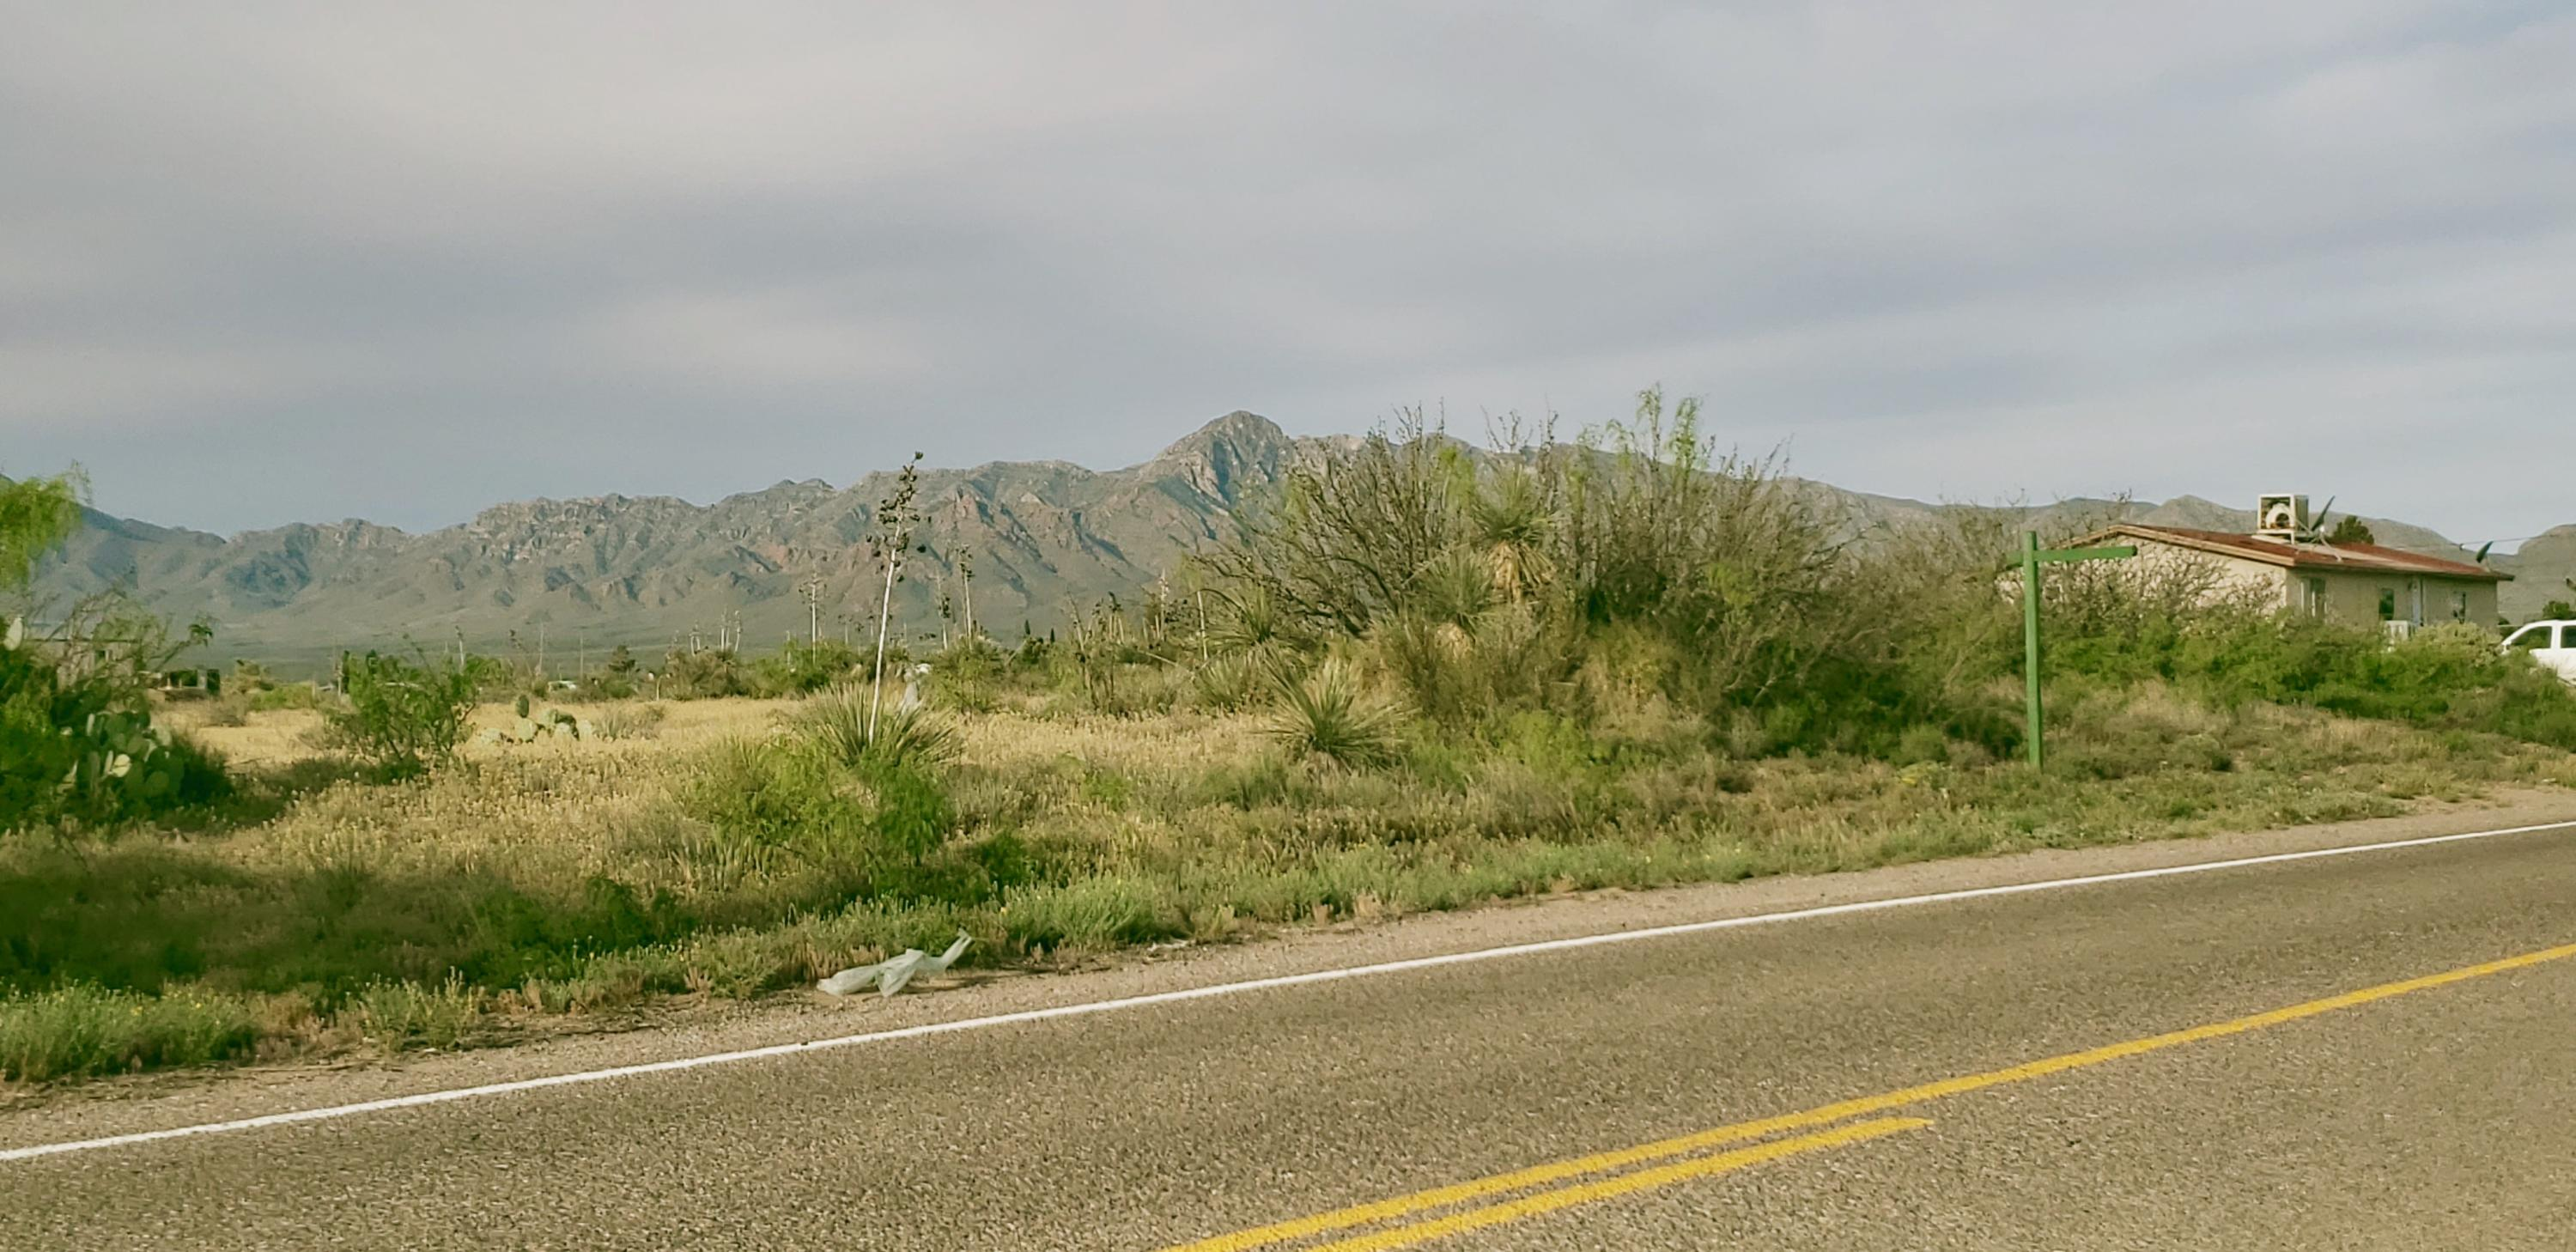 353 OASIS Drive, Chaparral, New Mexico 88081, ,Land,For sale,OASIS,826448